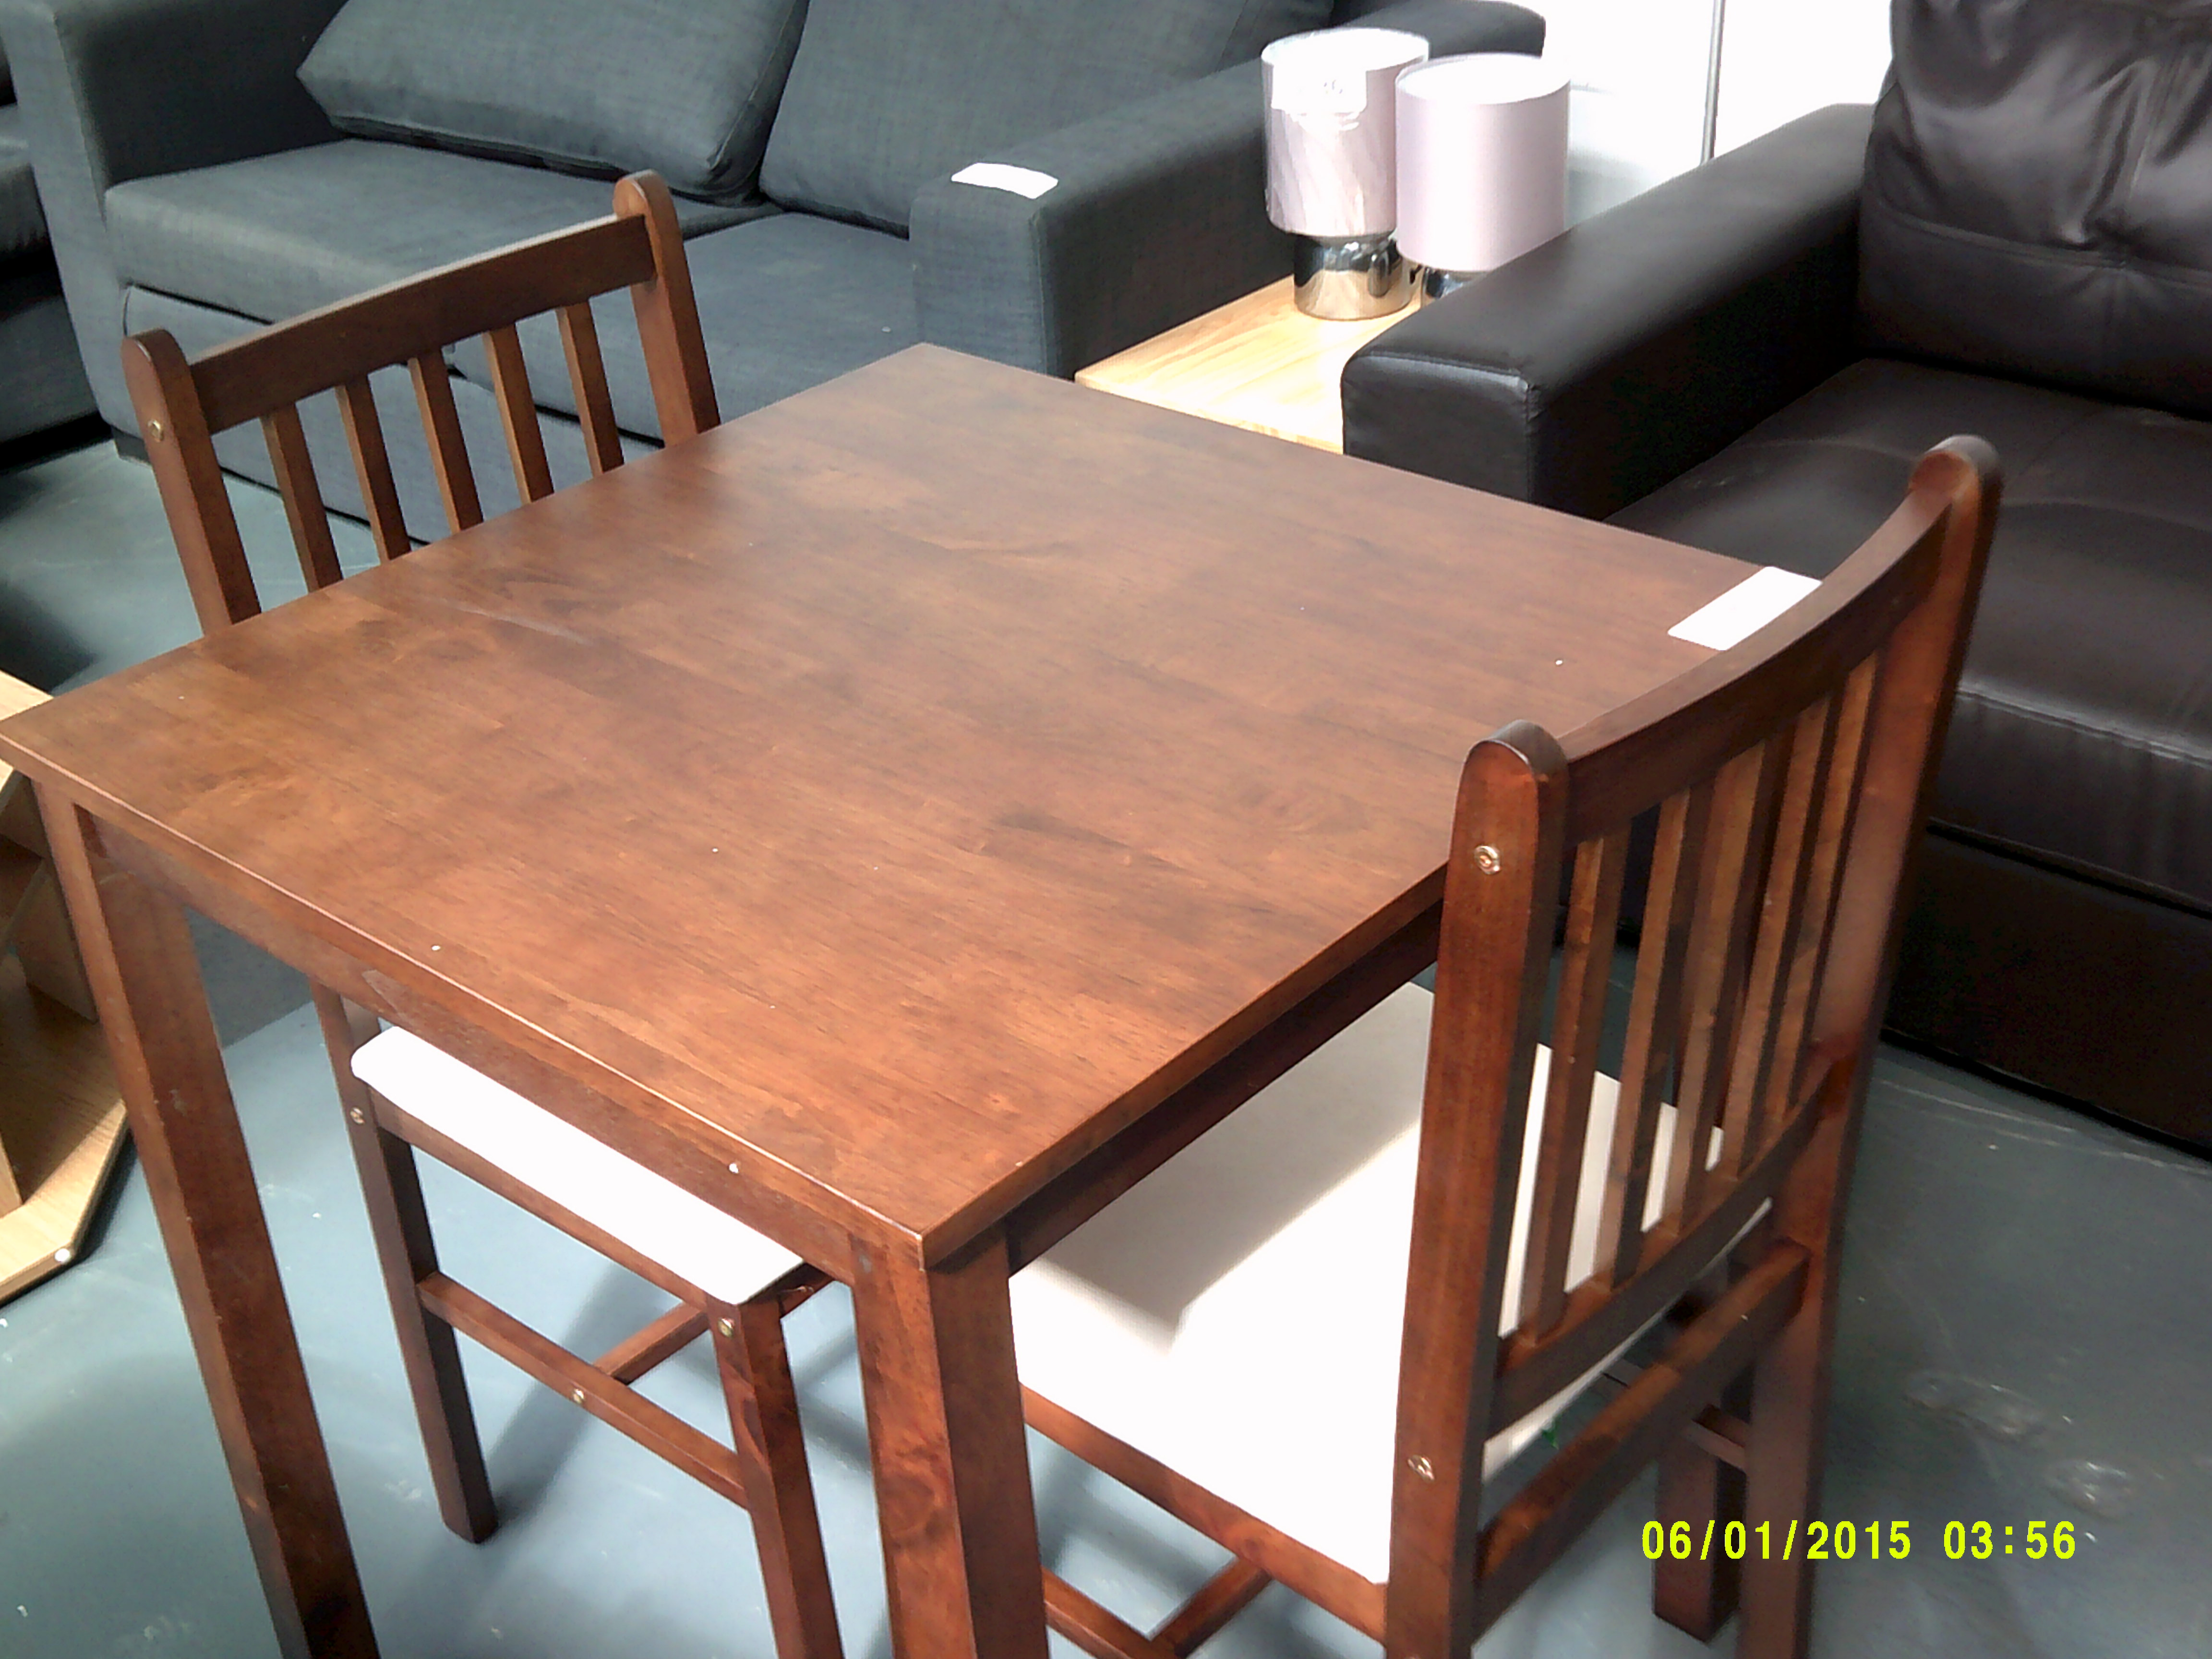 Lot 33 - Small Dark Wood Table & 2 Chairs Customer Returns